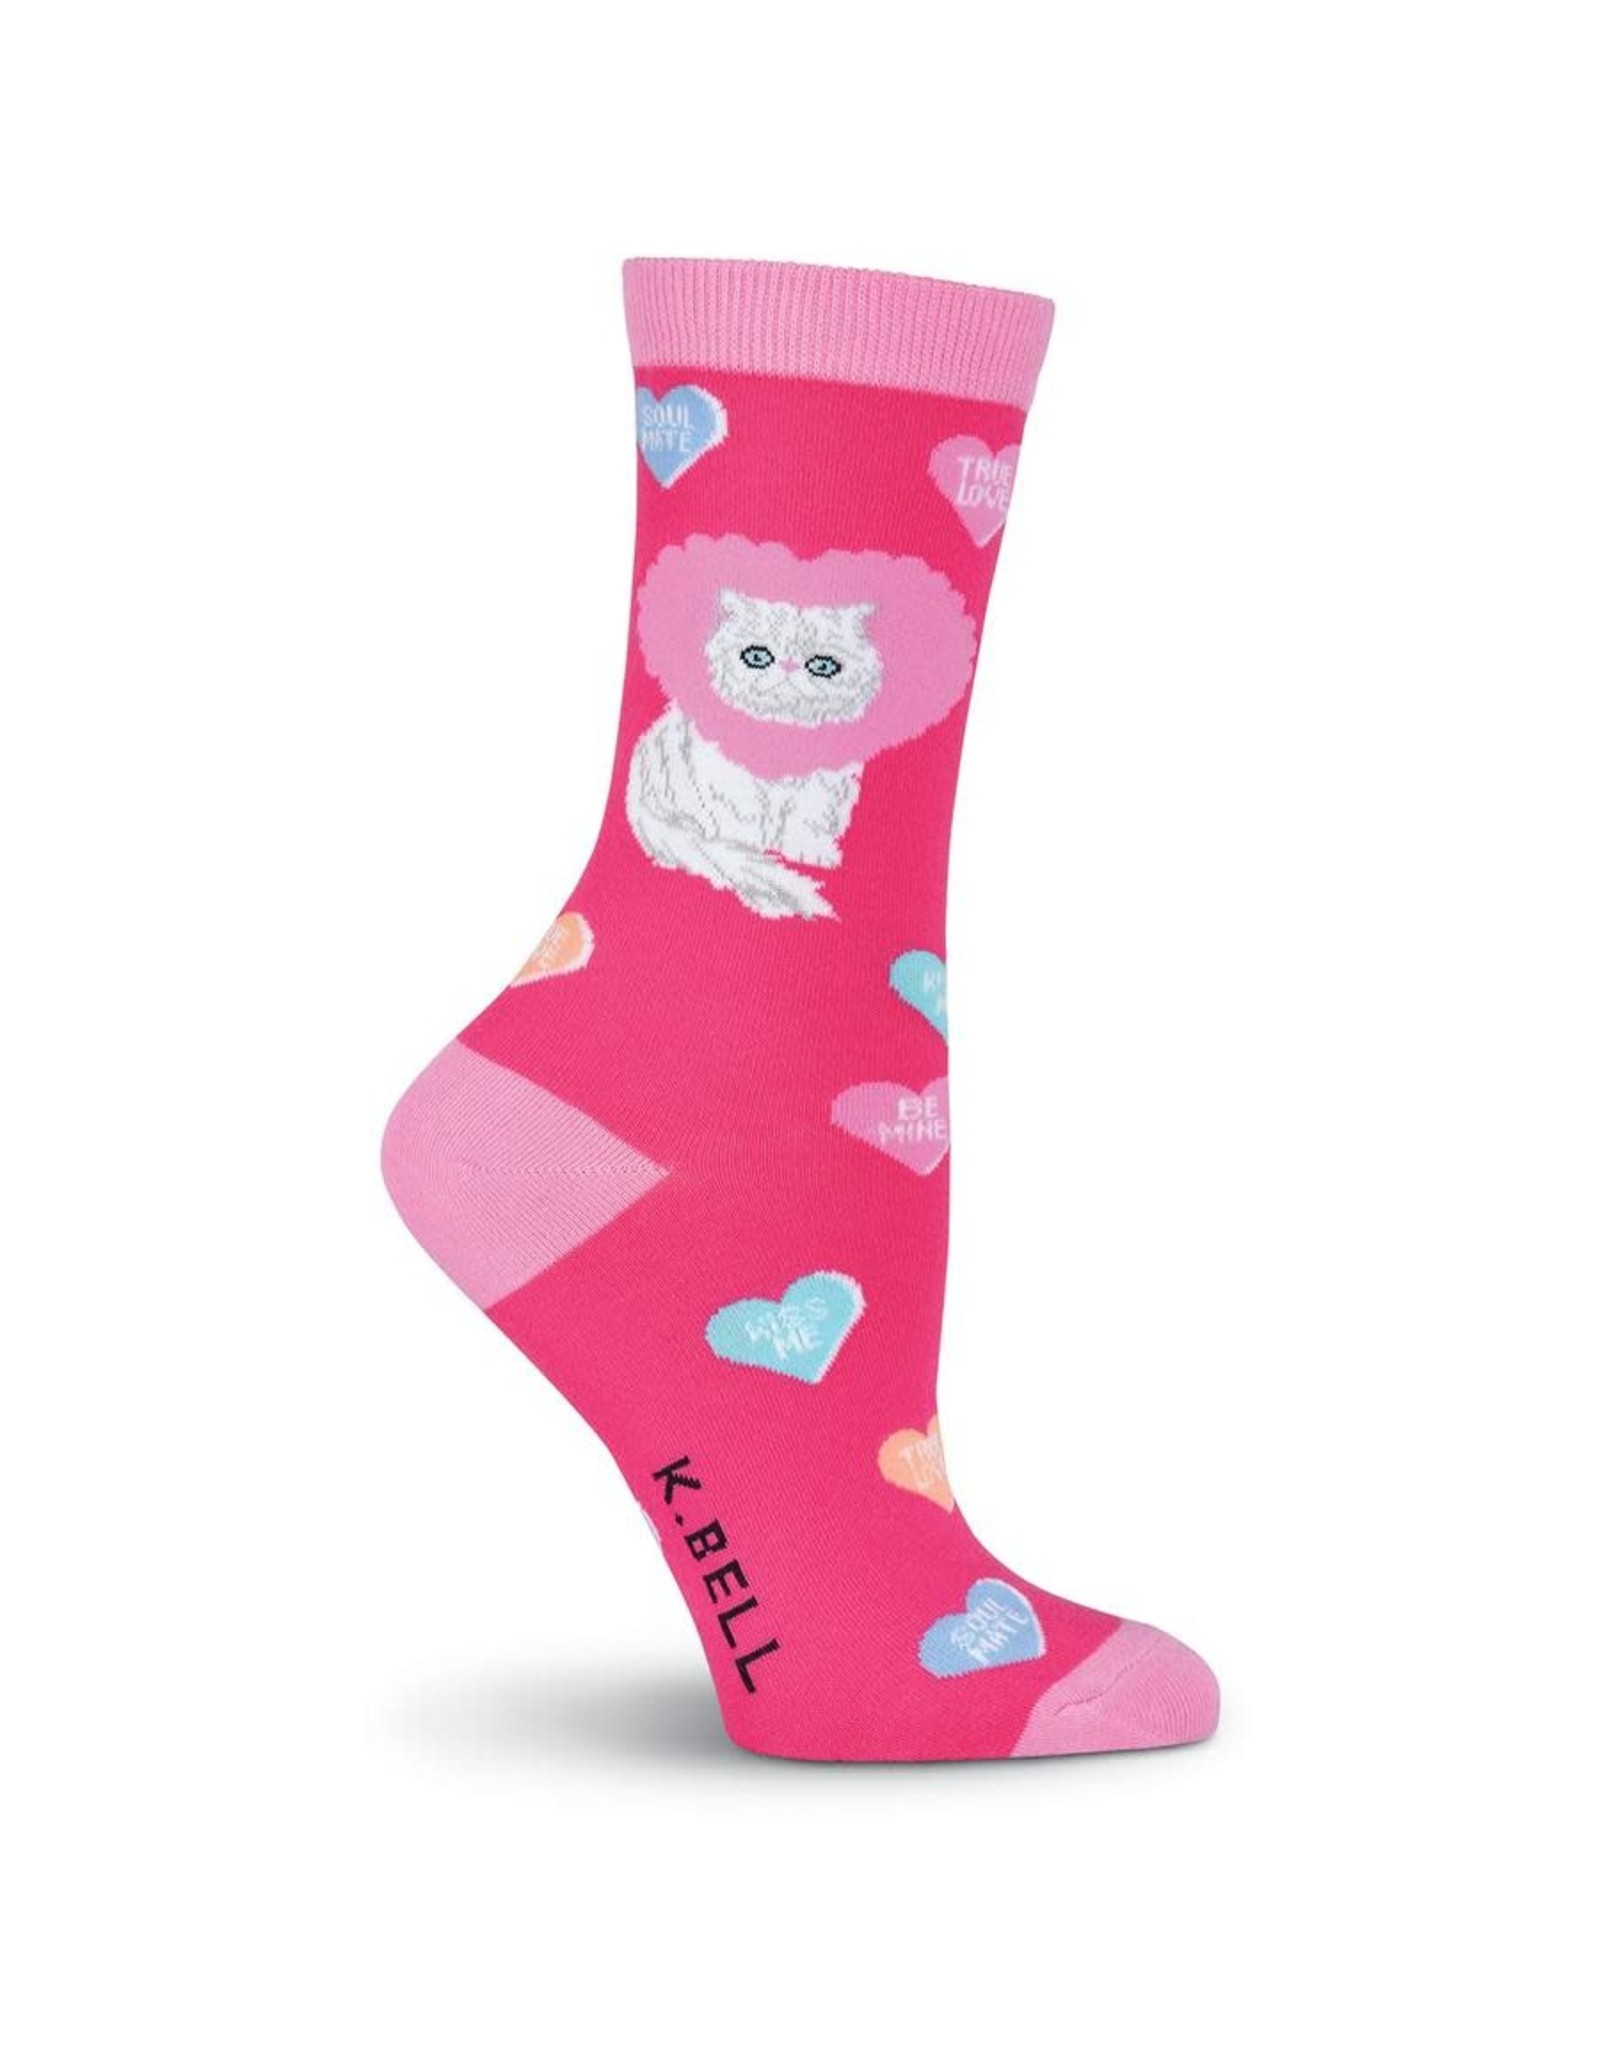 Socks (Womens) - White Cat